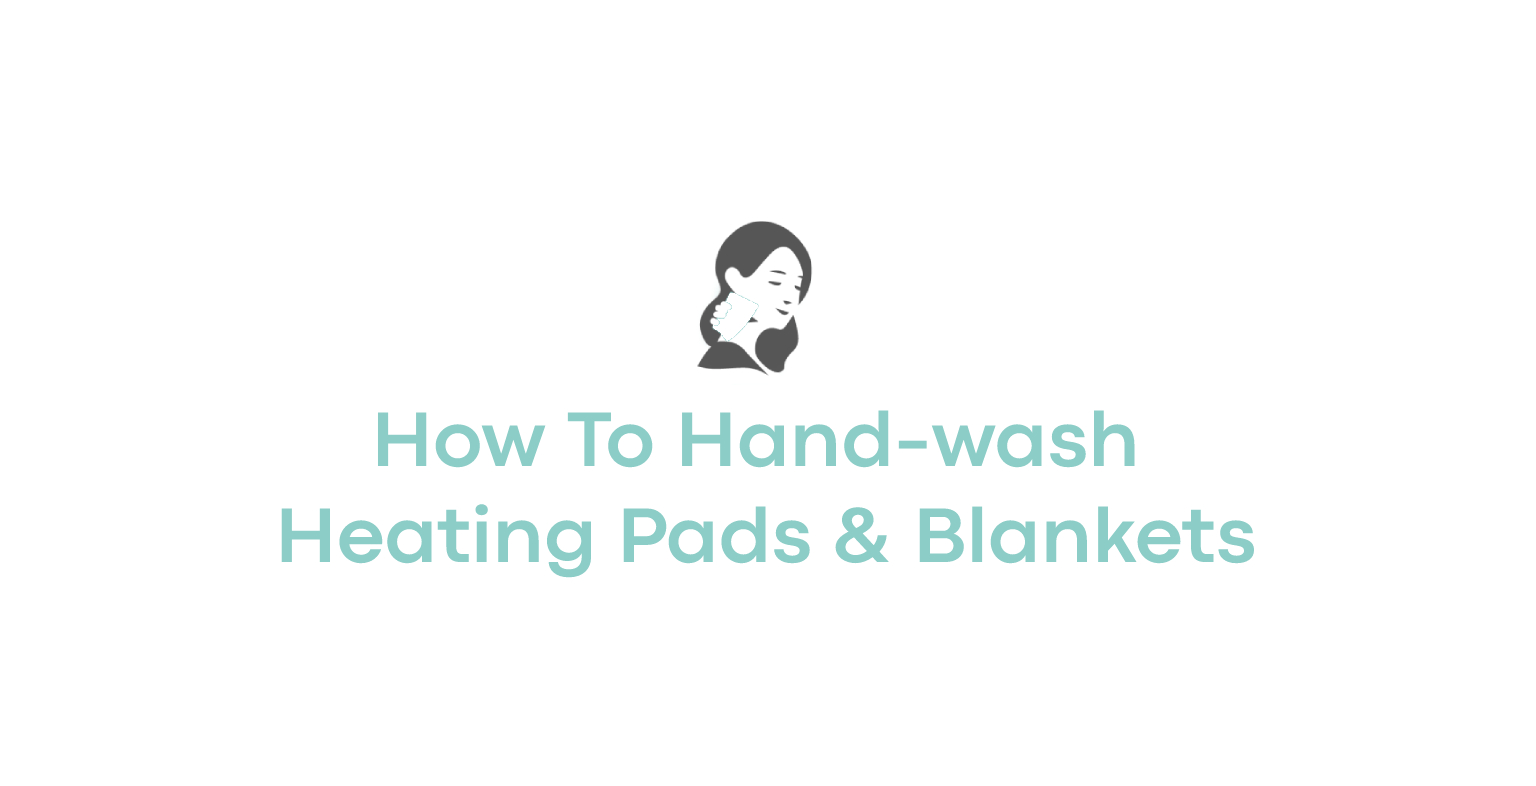 How To Hand-wash Heating Pads & Blankets